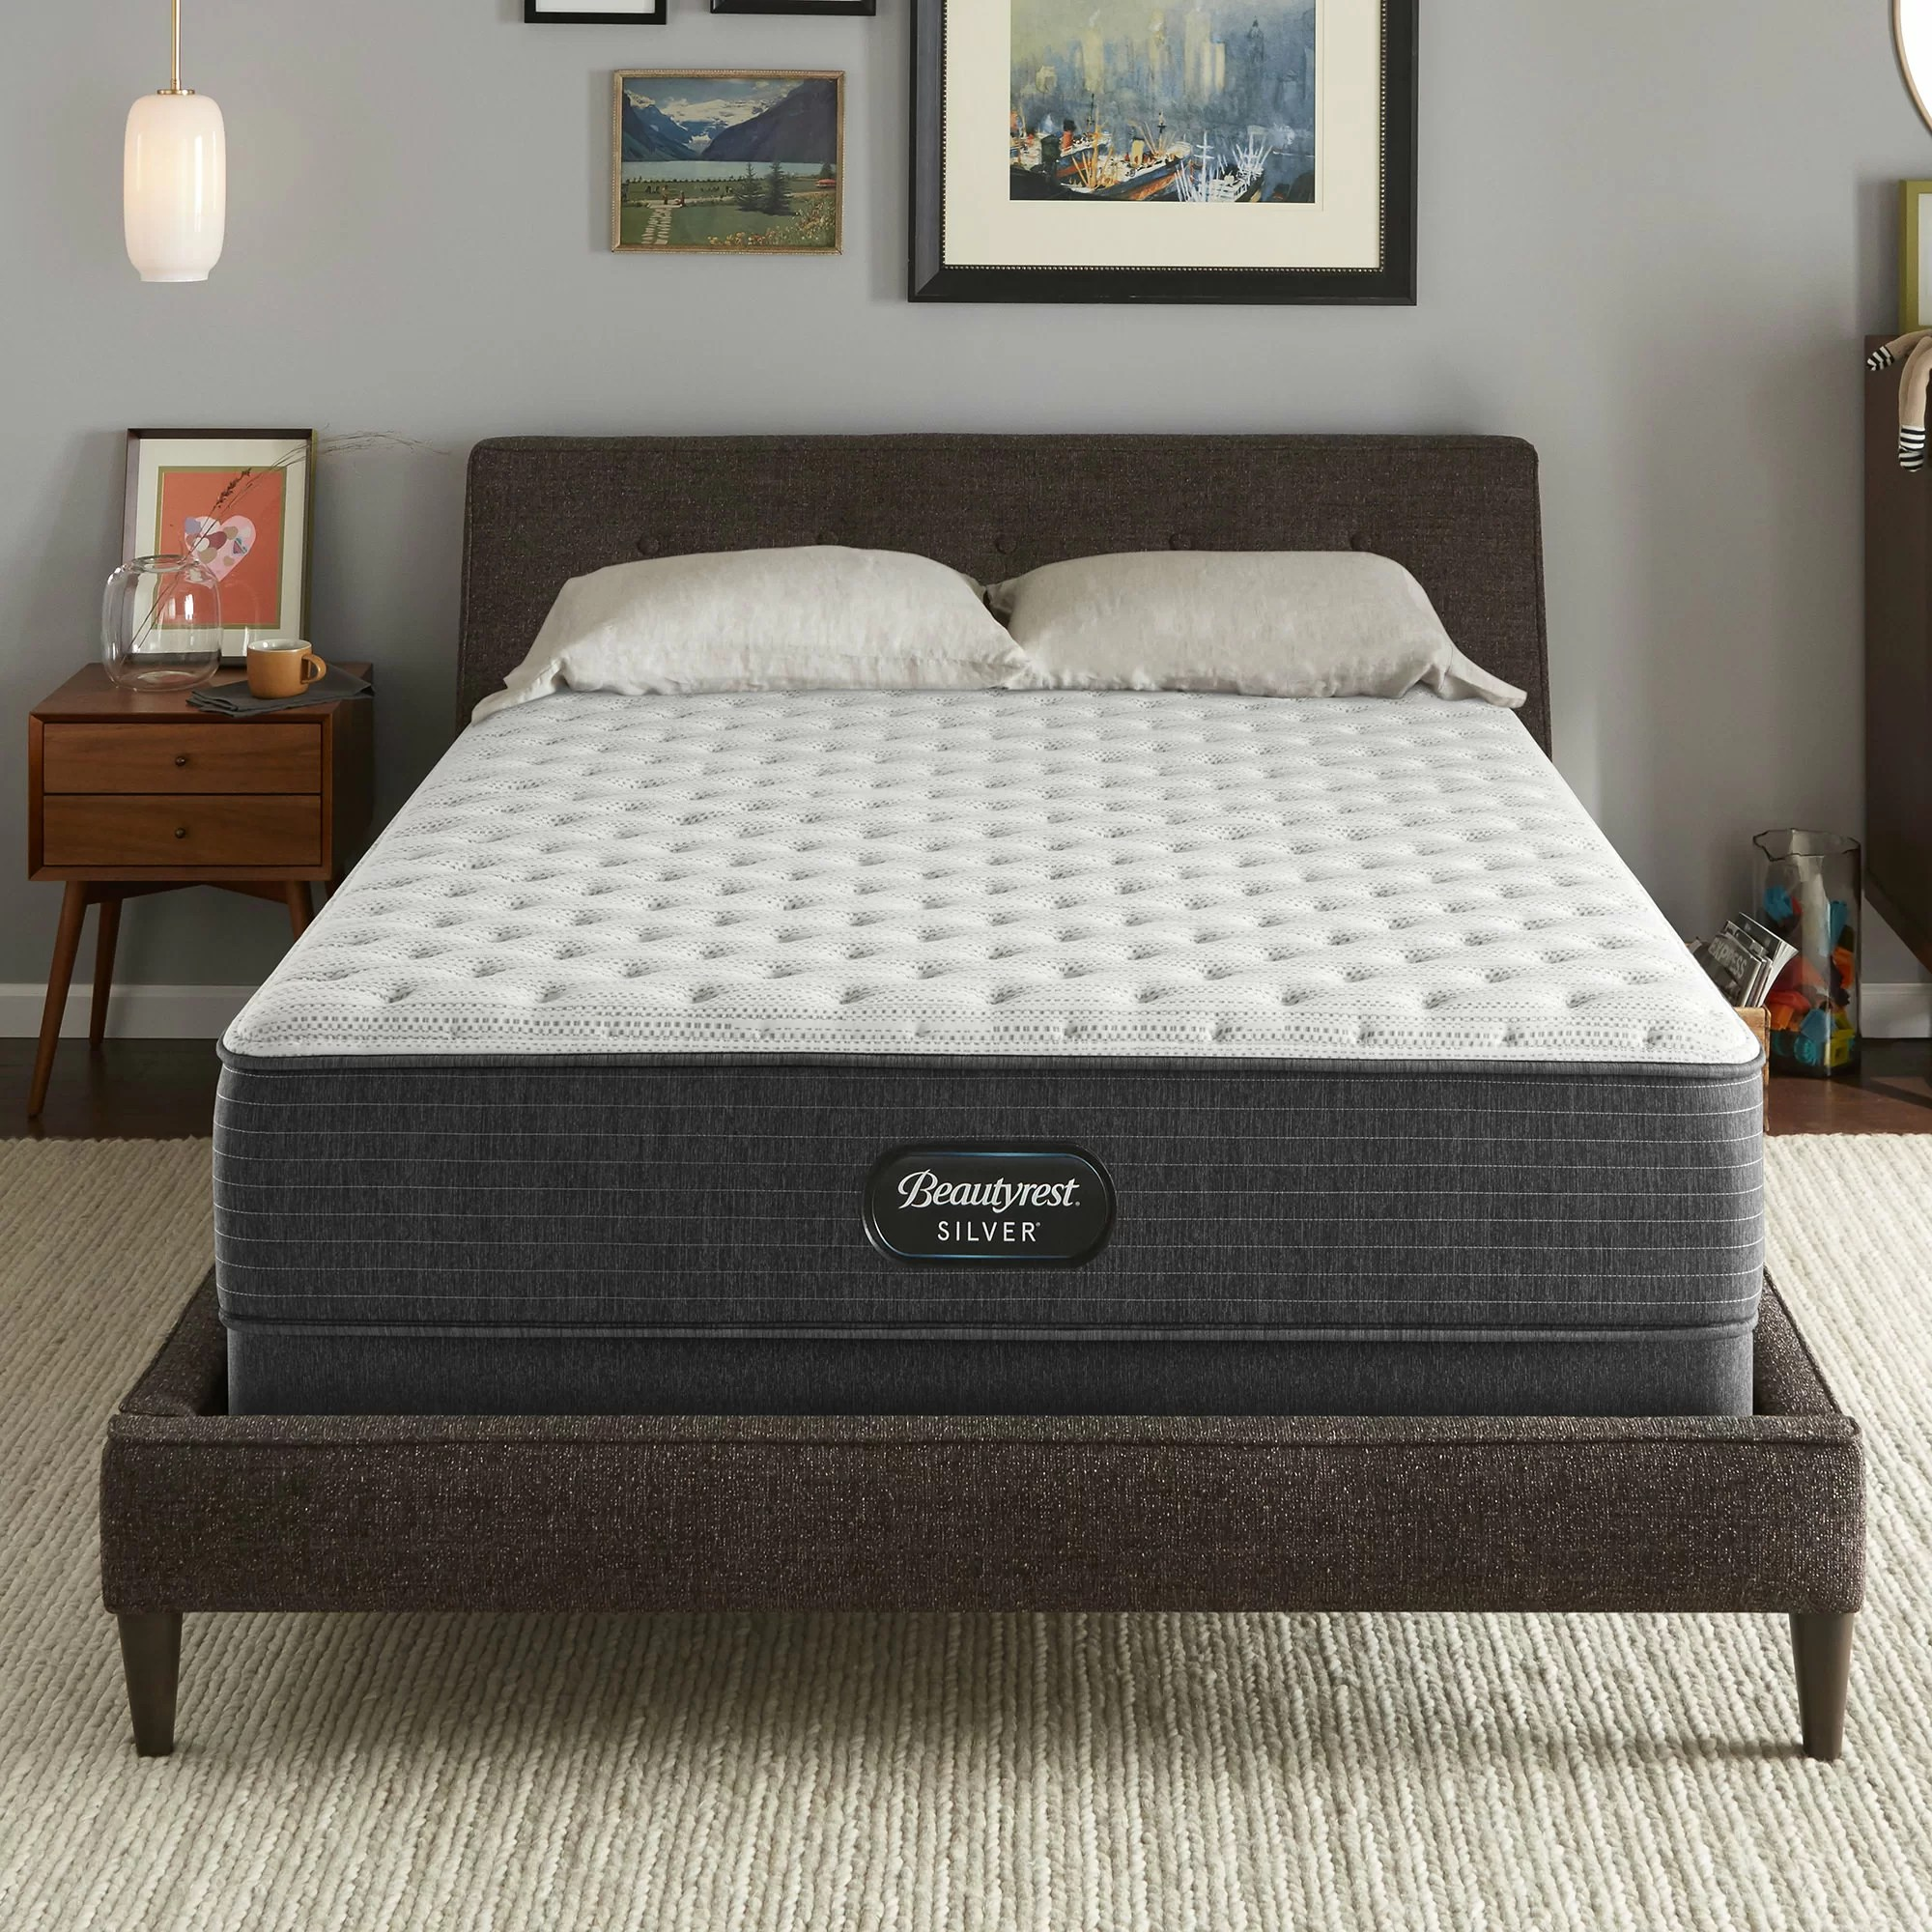 Serta Mattress Uk Simmons Beautyrest Wayfair